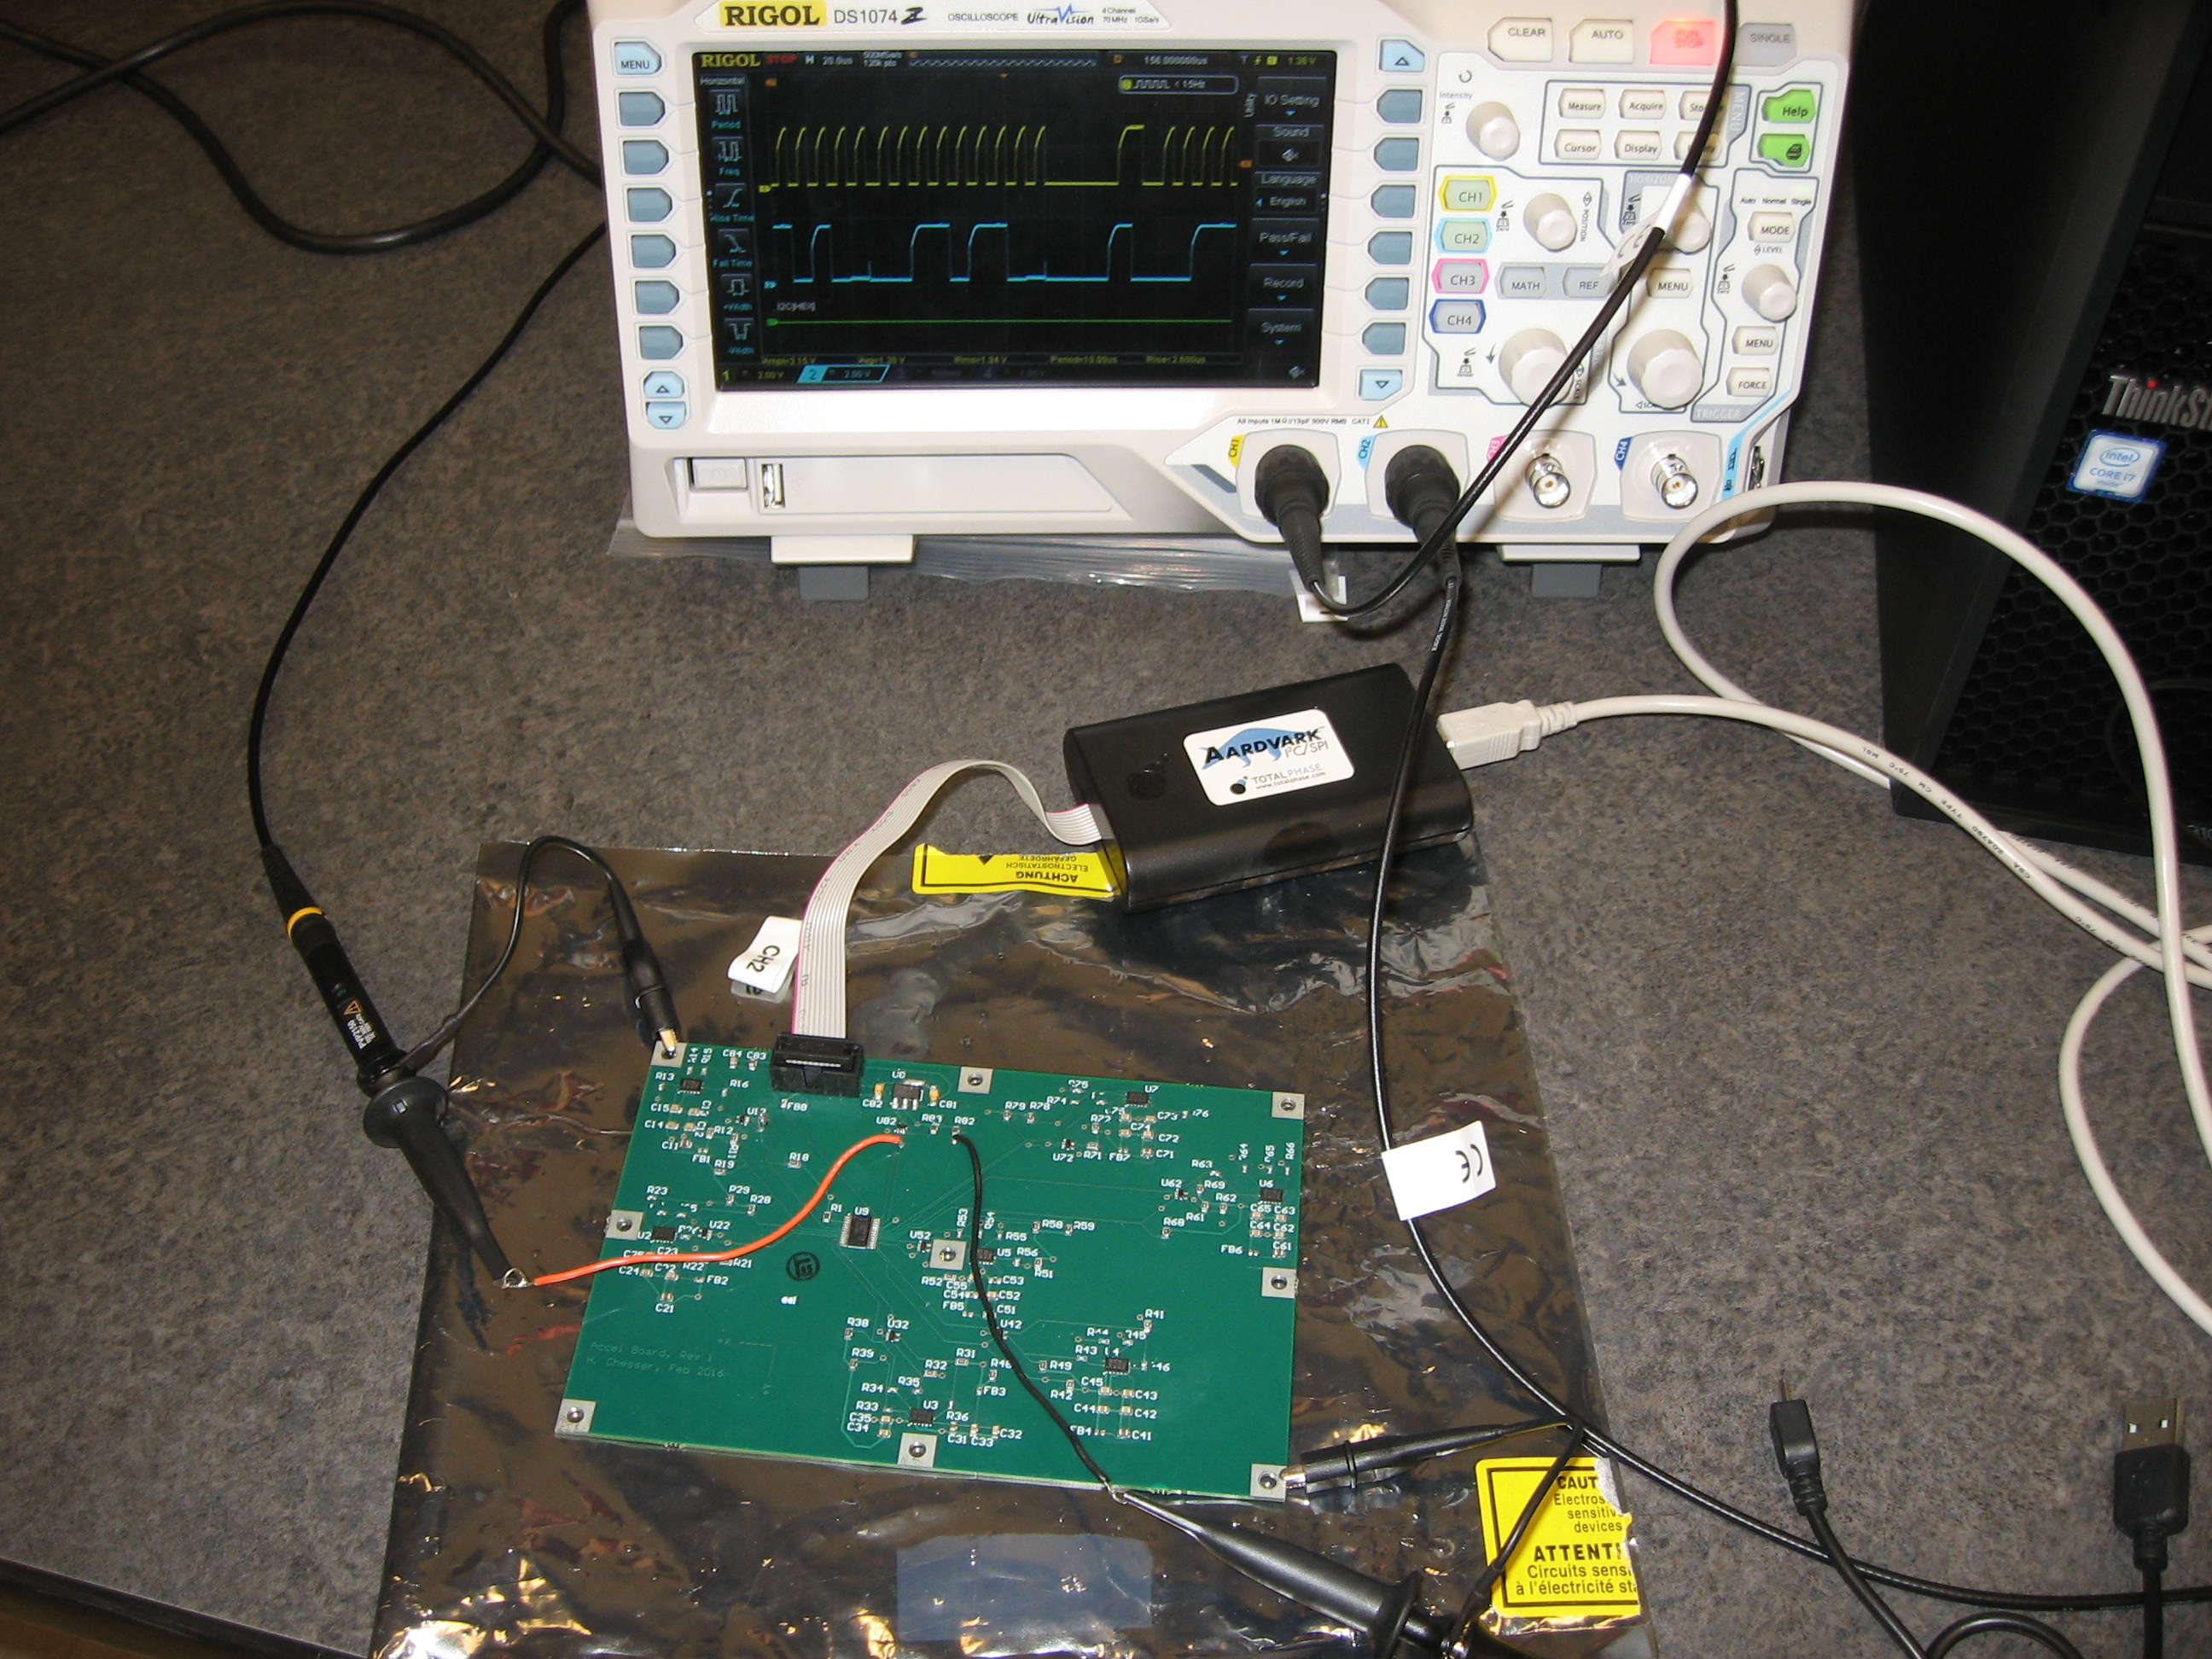 Hugh Chesser Peng Links And Information Pics Photos Electronic Circuit Board Showing Wires Microchips The Experiment Has Students Talking To Both A Multiplexer 7 Accelerometer Chips On This Second Is Shown In Figure Below